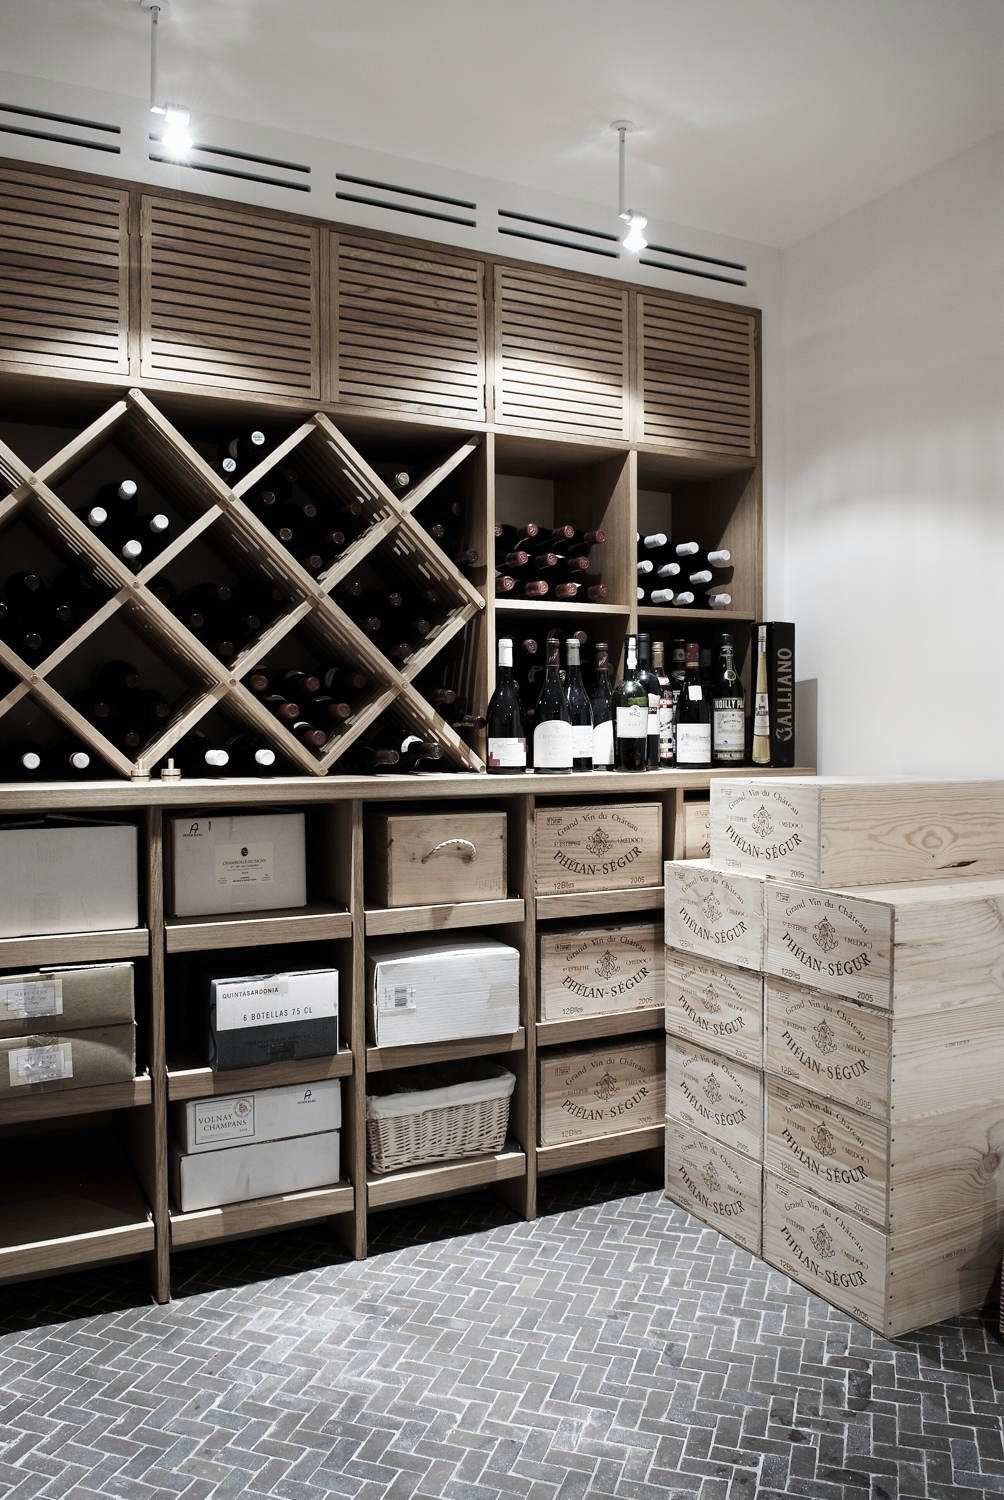 LEGIO PROJECT_winecellar.jpg